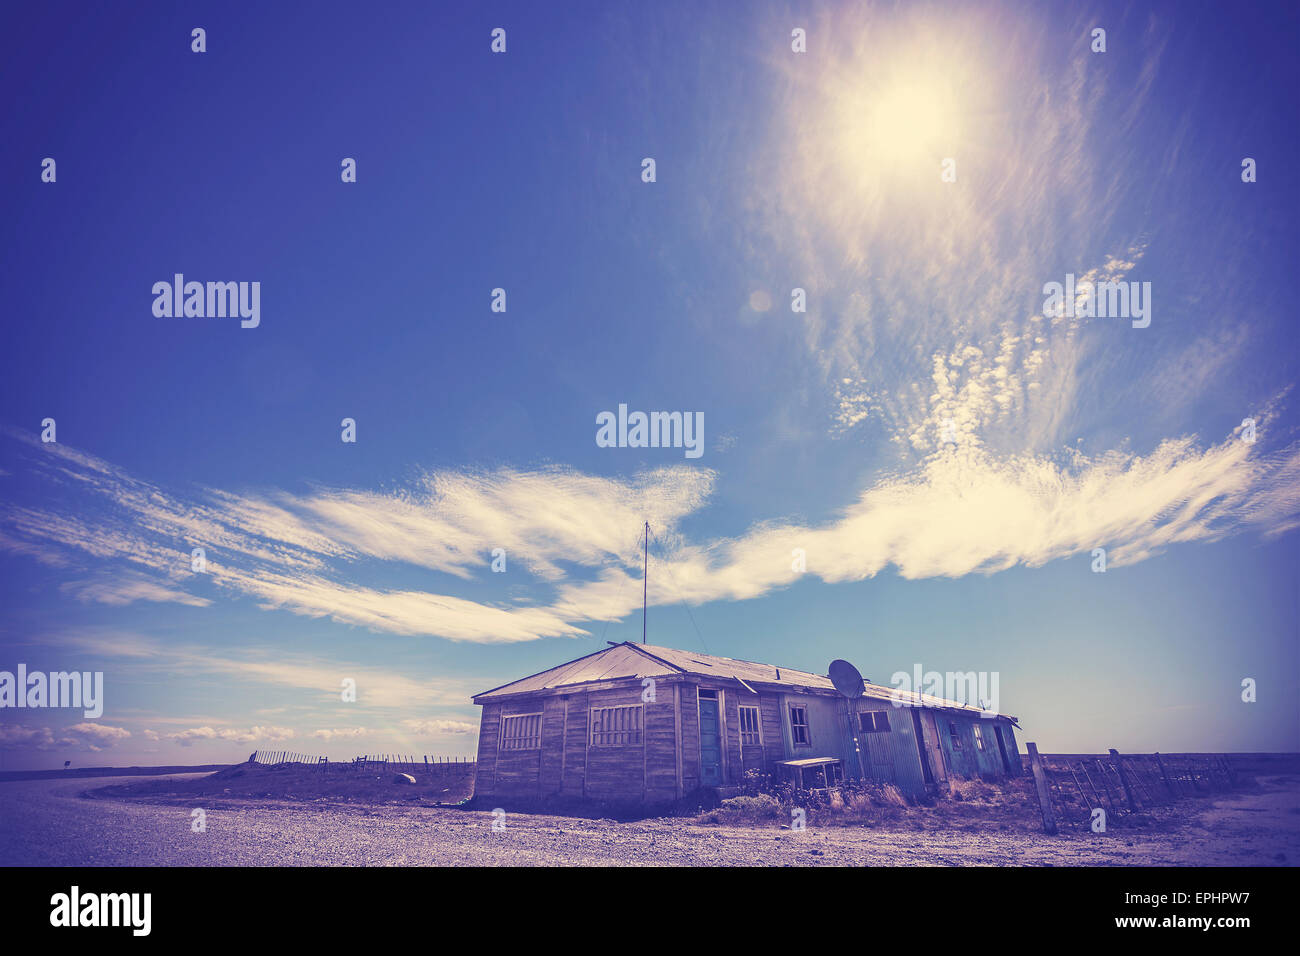 Vintage instagram effect toned picture of abandoned house on desert of Patagonia. - Stock Image